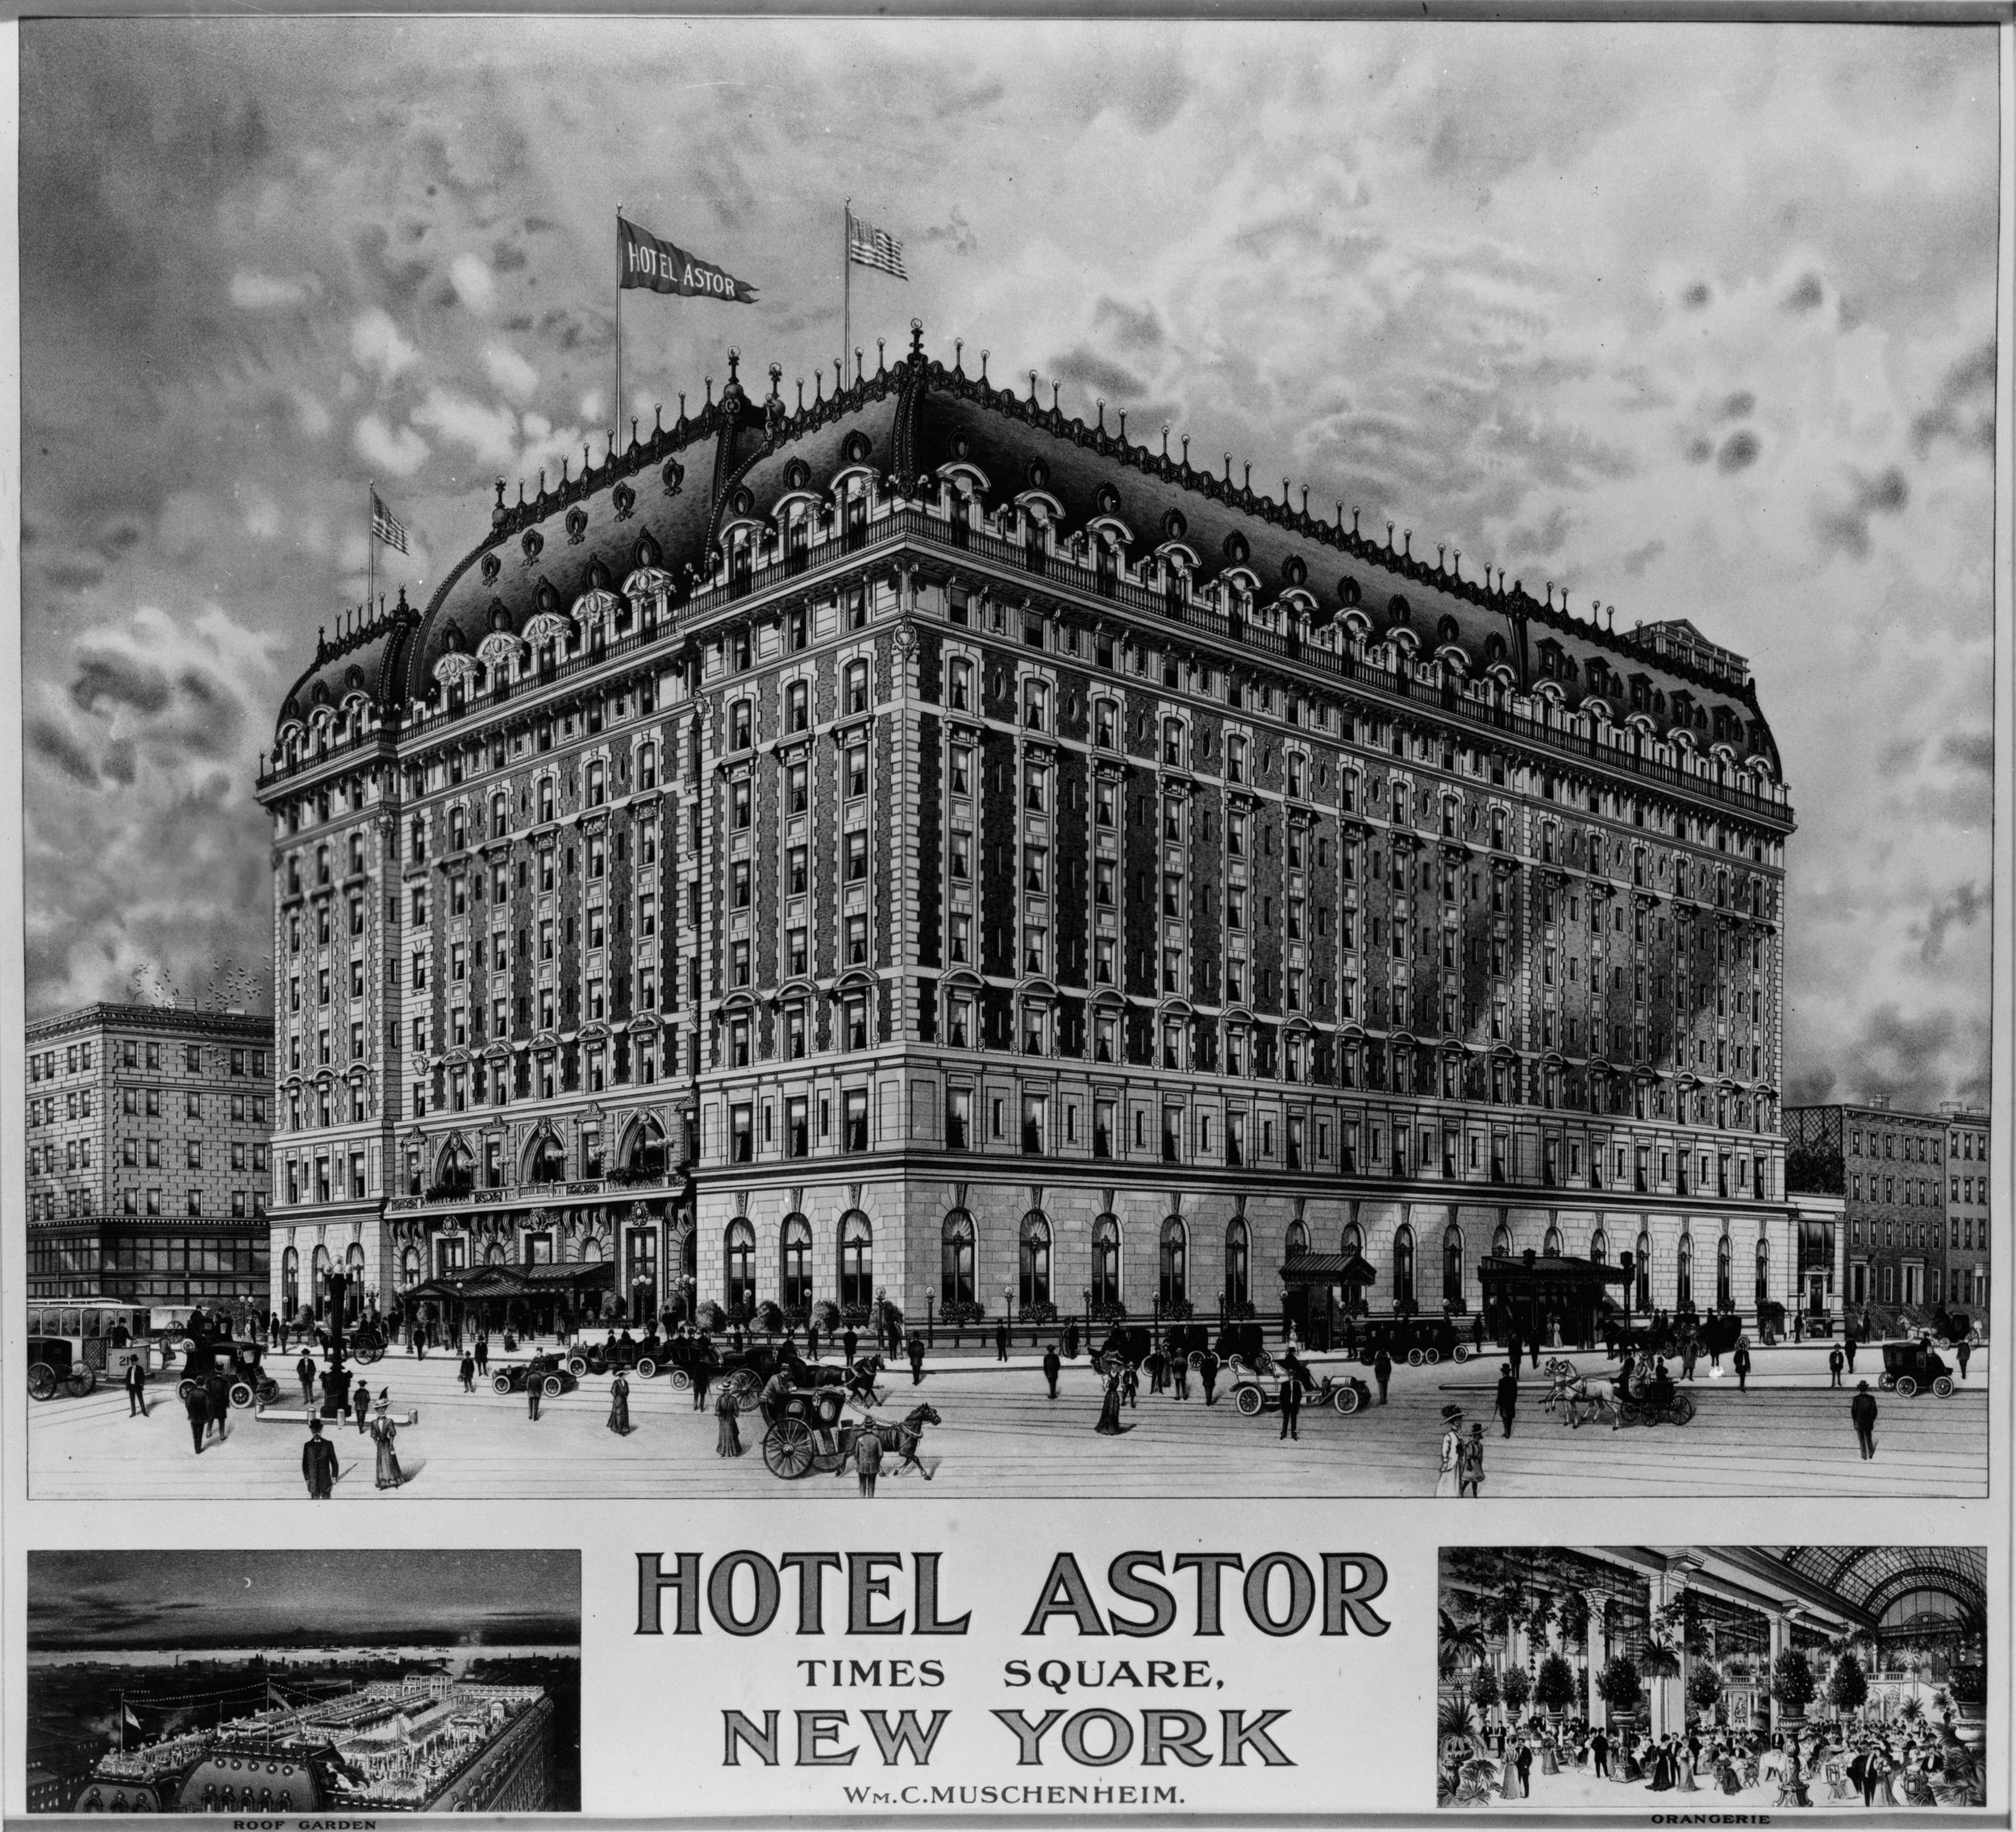 The first American Soccer League was formed by club owners in 1921 at the Hotel Astor in Manhattan